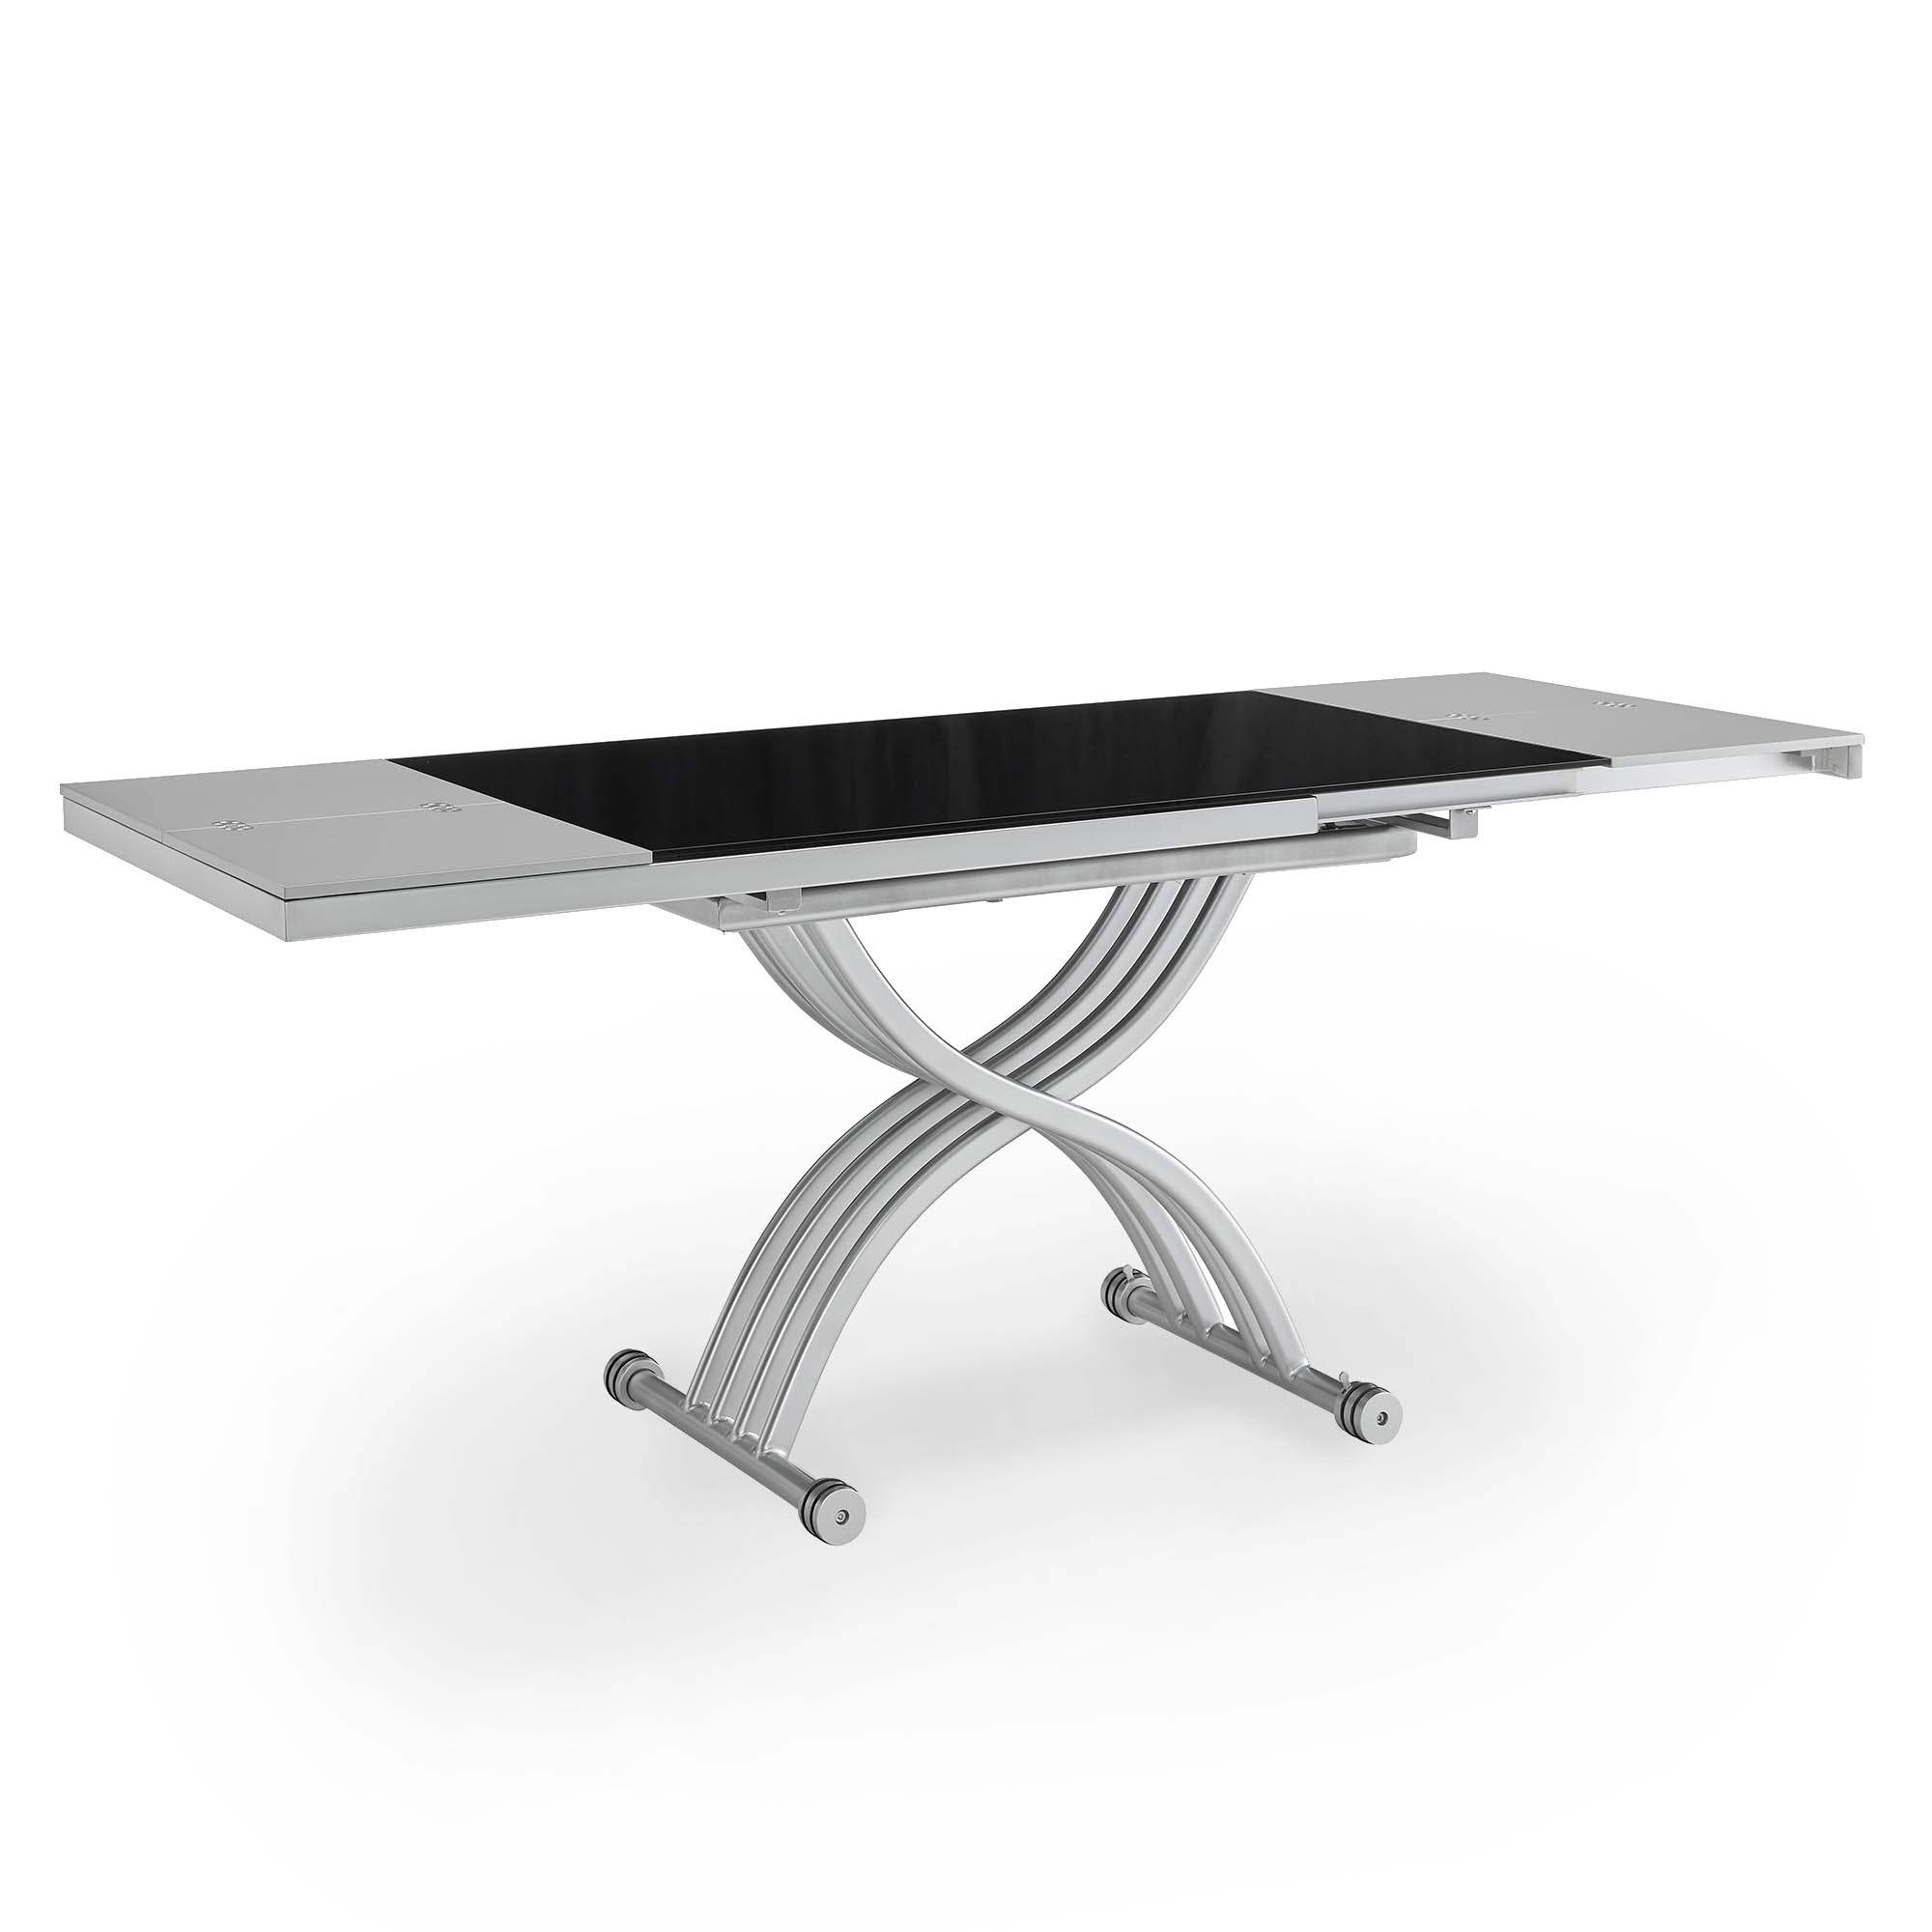 Table basse relevable 2 allonges noir et gris STUDIO